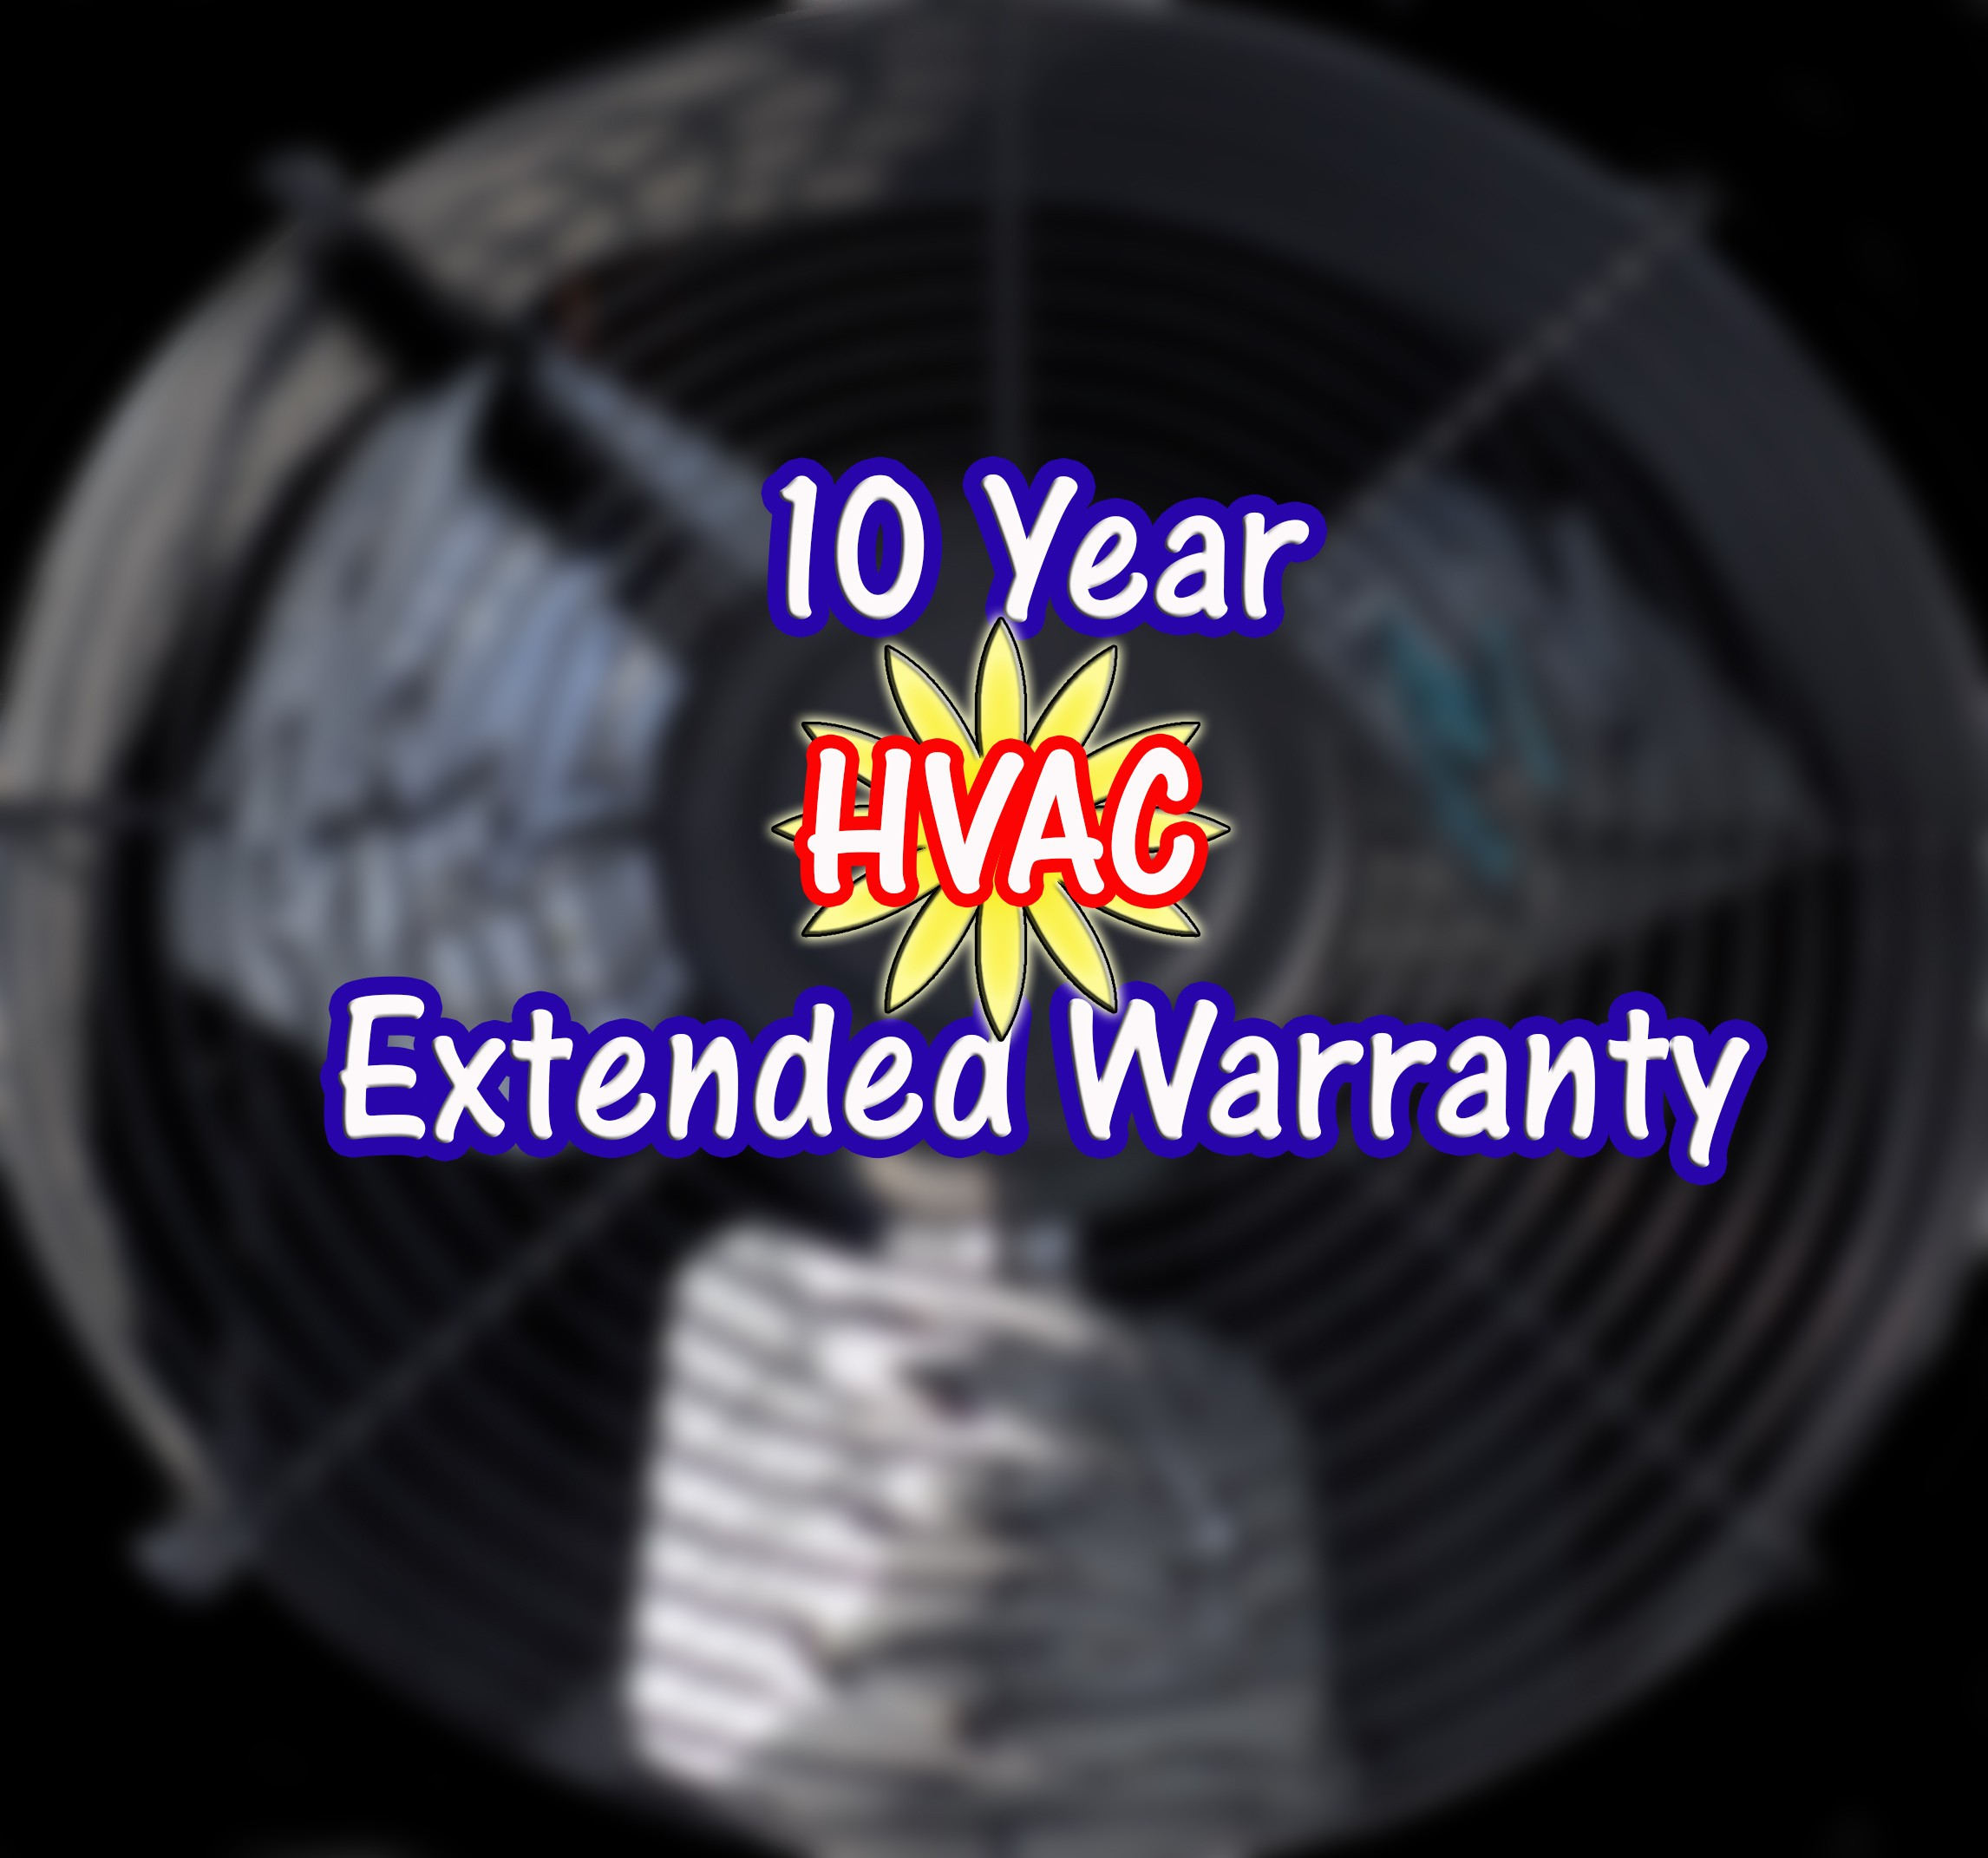 Is My Air Conditioning Under Warranty Central Conditioner Circuit Board Photos Hvac Extended 10 Year